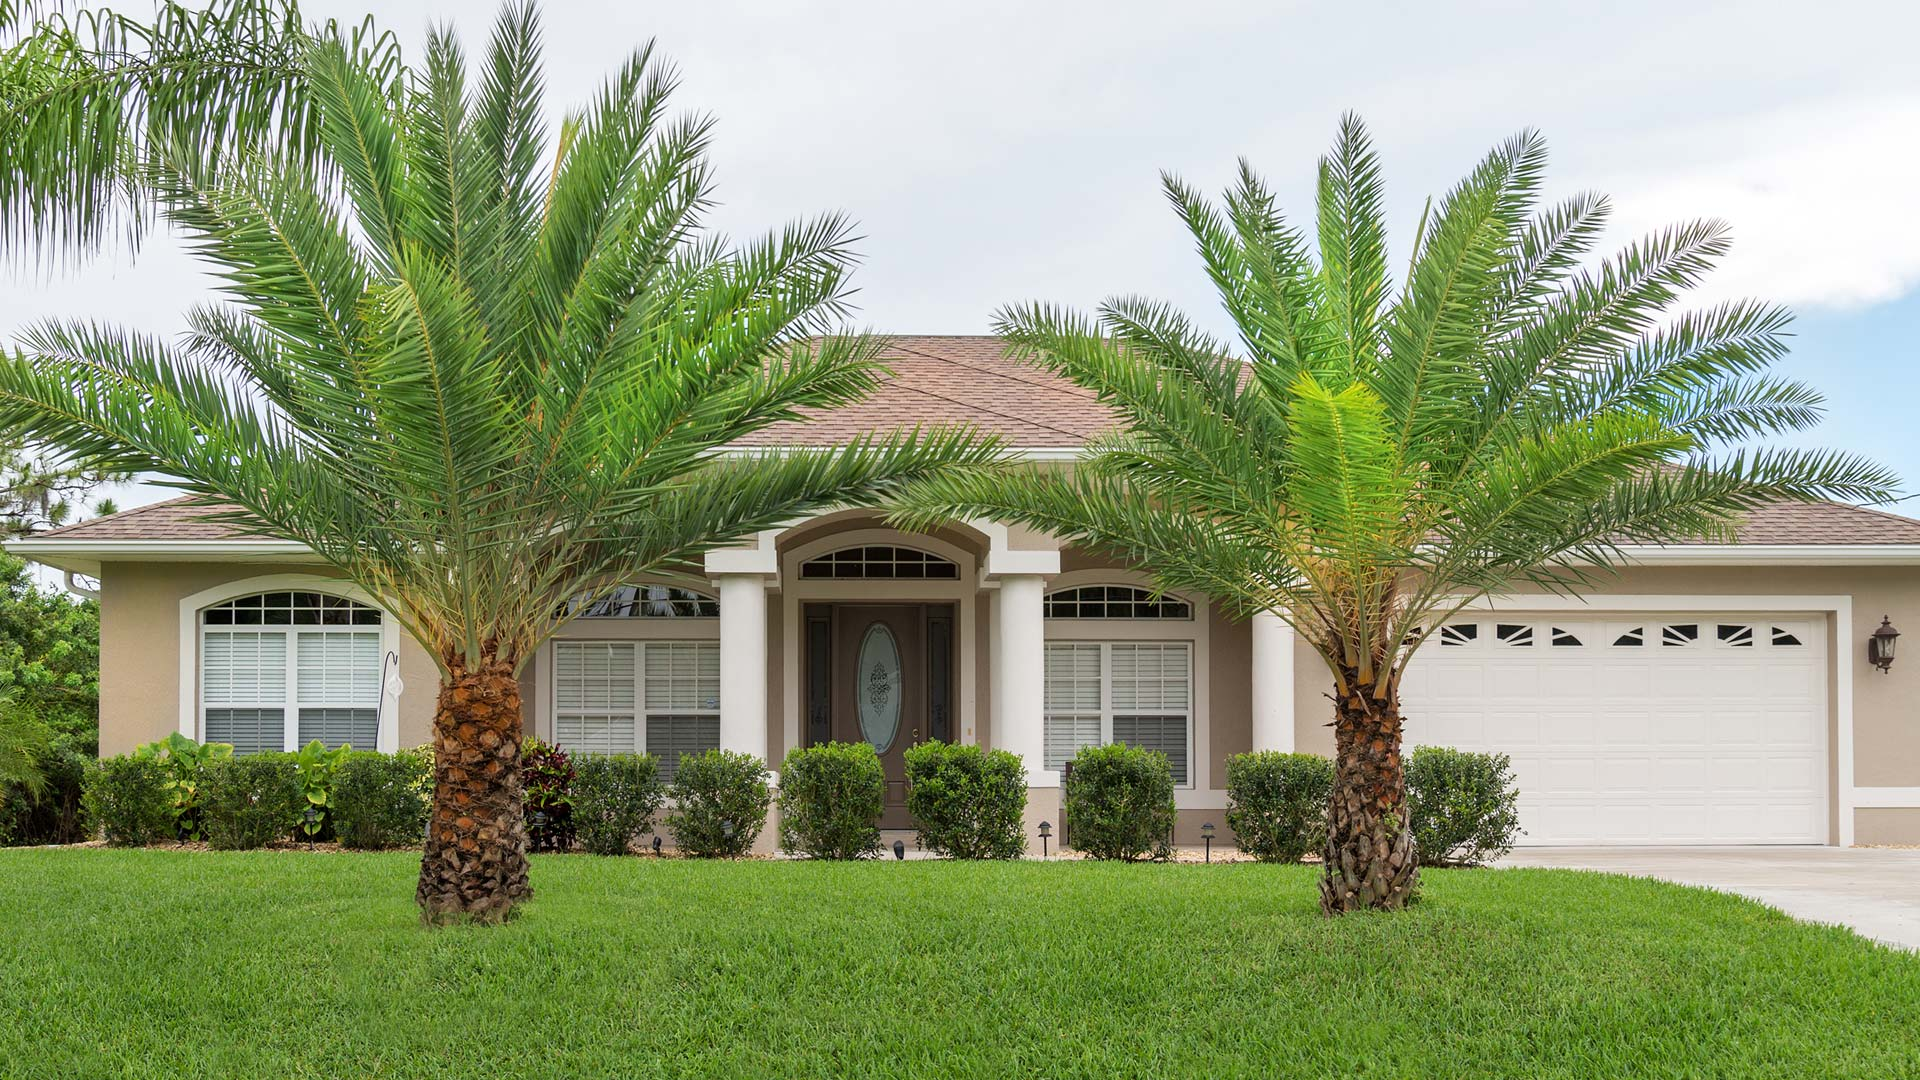 Healthy palm trees that we care for through regular maintenance in front of a home located in Encinitas.